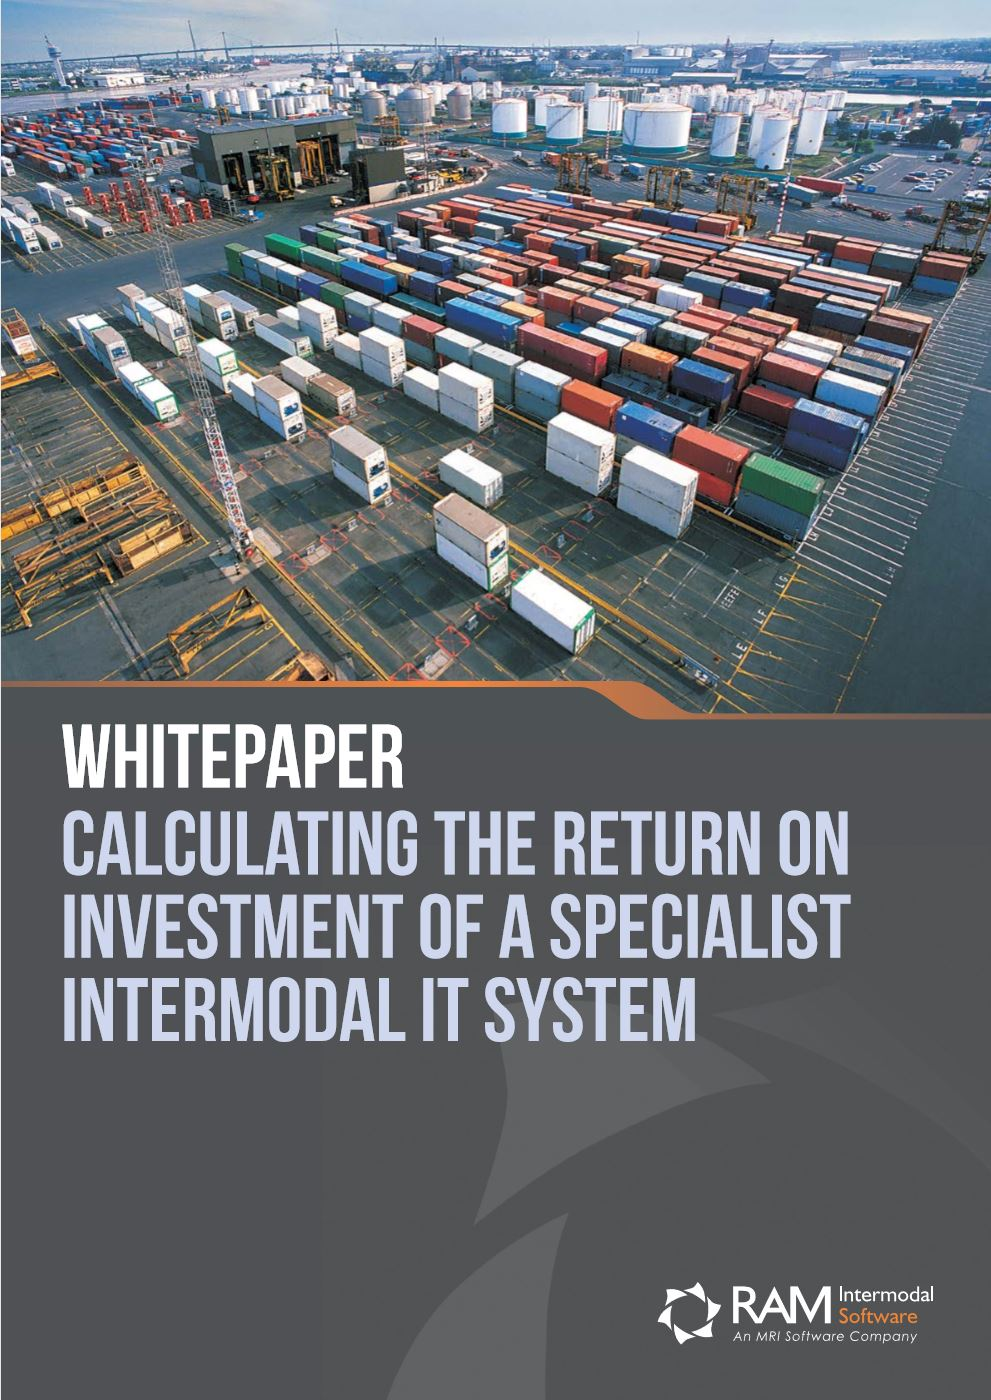 Calculating the Return on Investment of a Specialist Intermodal IT System